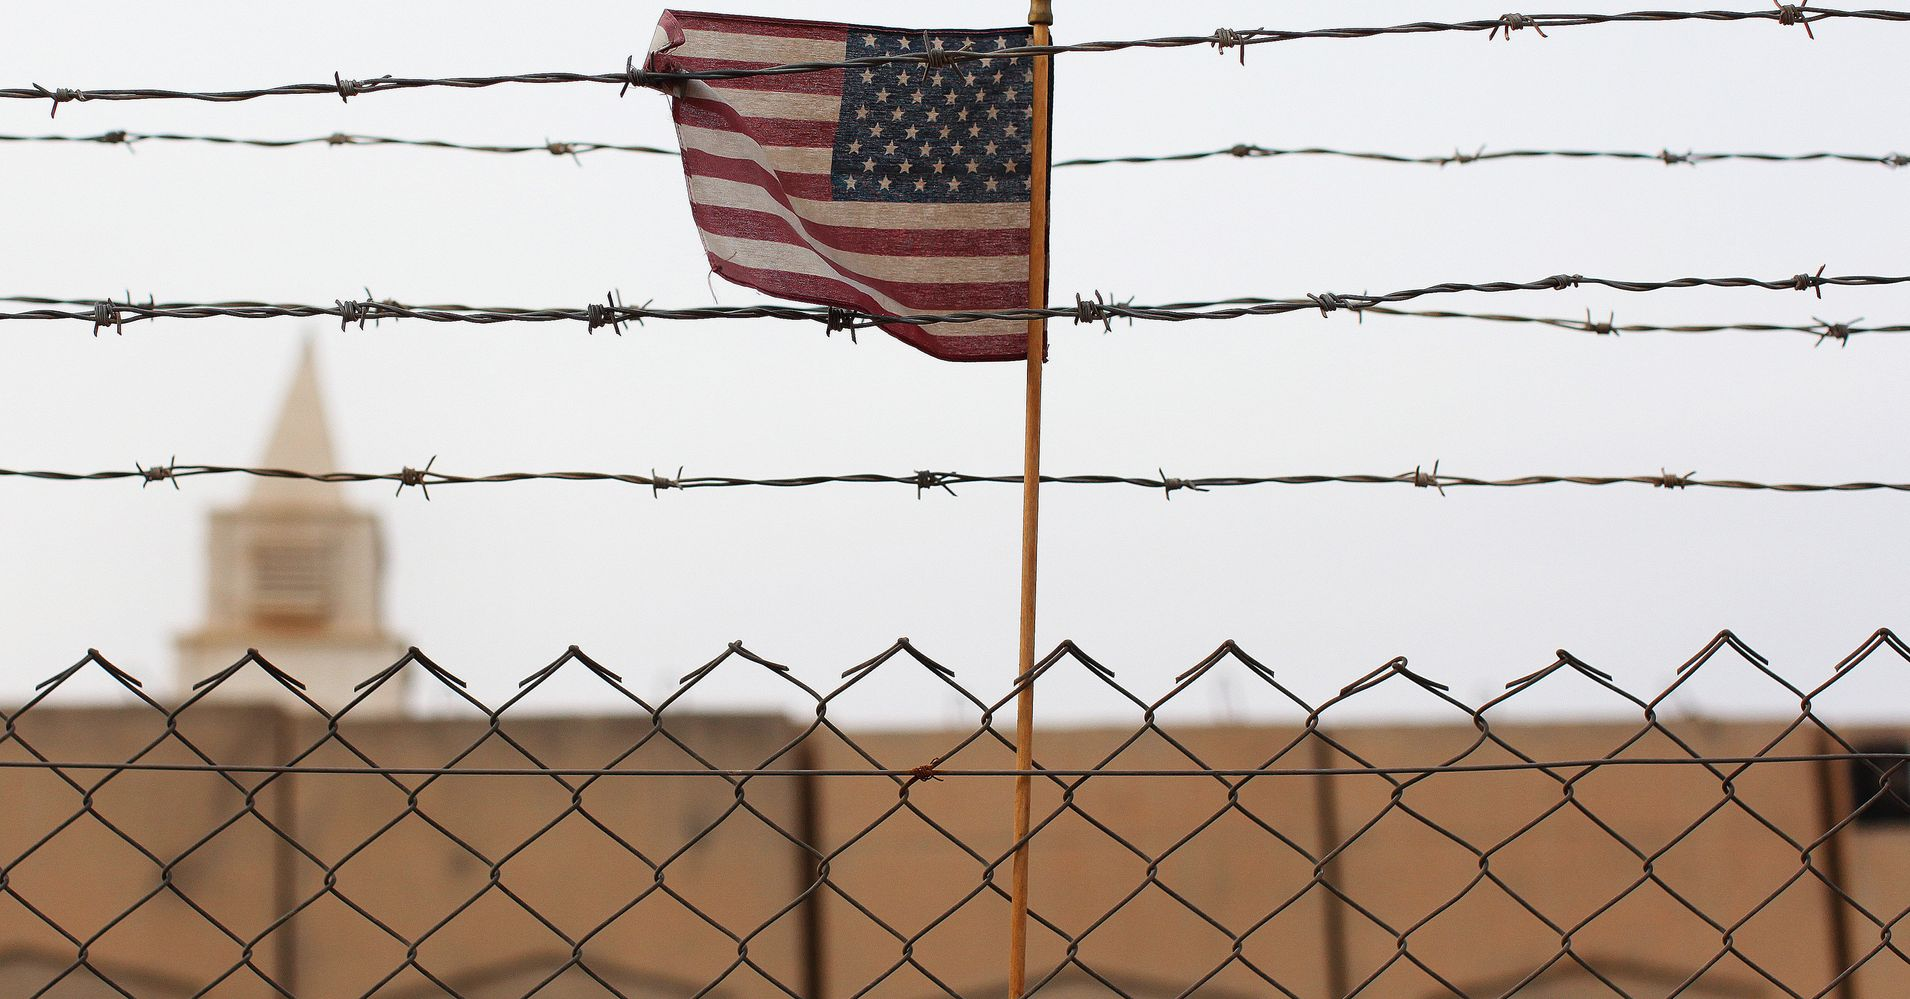 Endless Wars Are The Real Scenes Of \'American Carnage\' | HuffPost